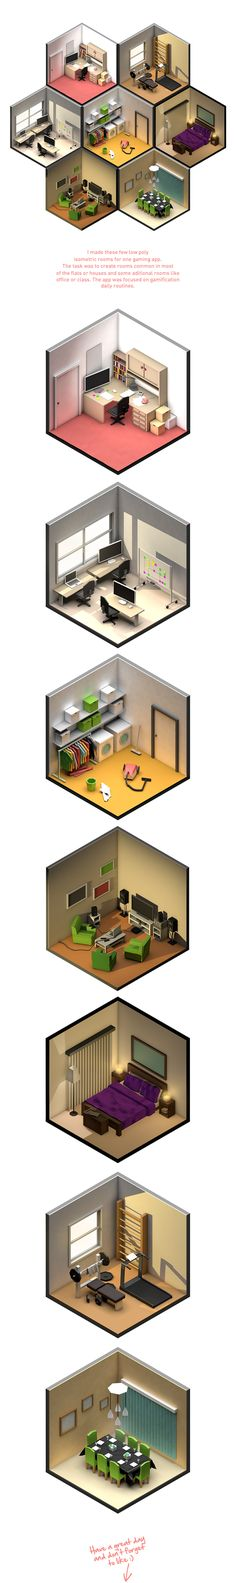 Low Poly rooms by Petr Kollarcik, via Behance                                                                                                                                                                                 Mais